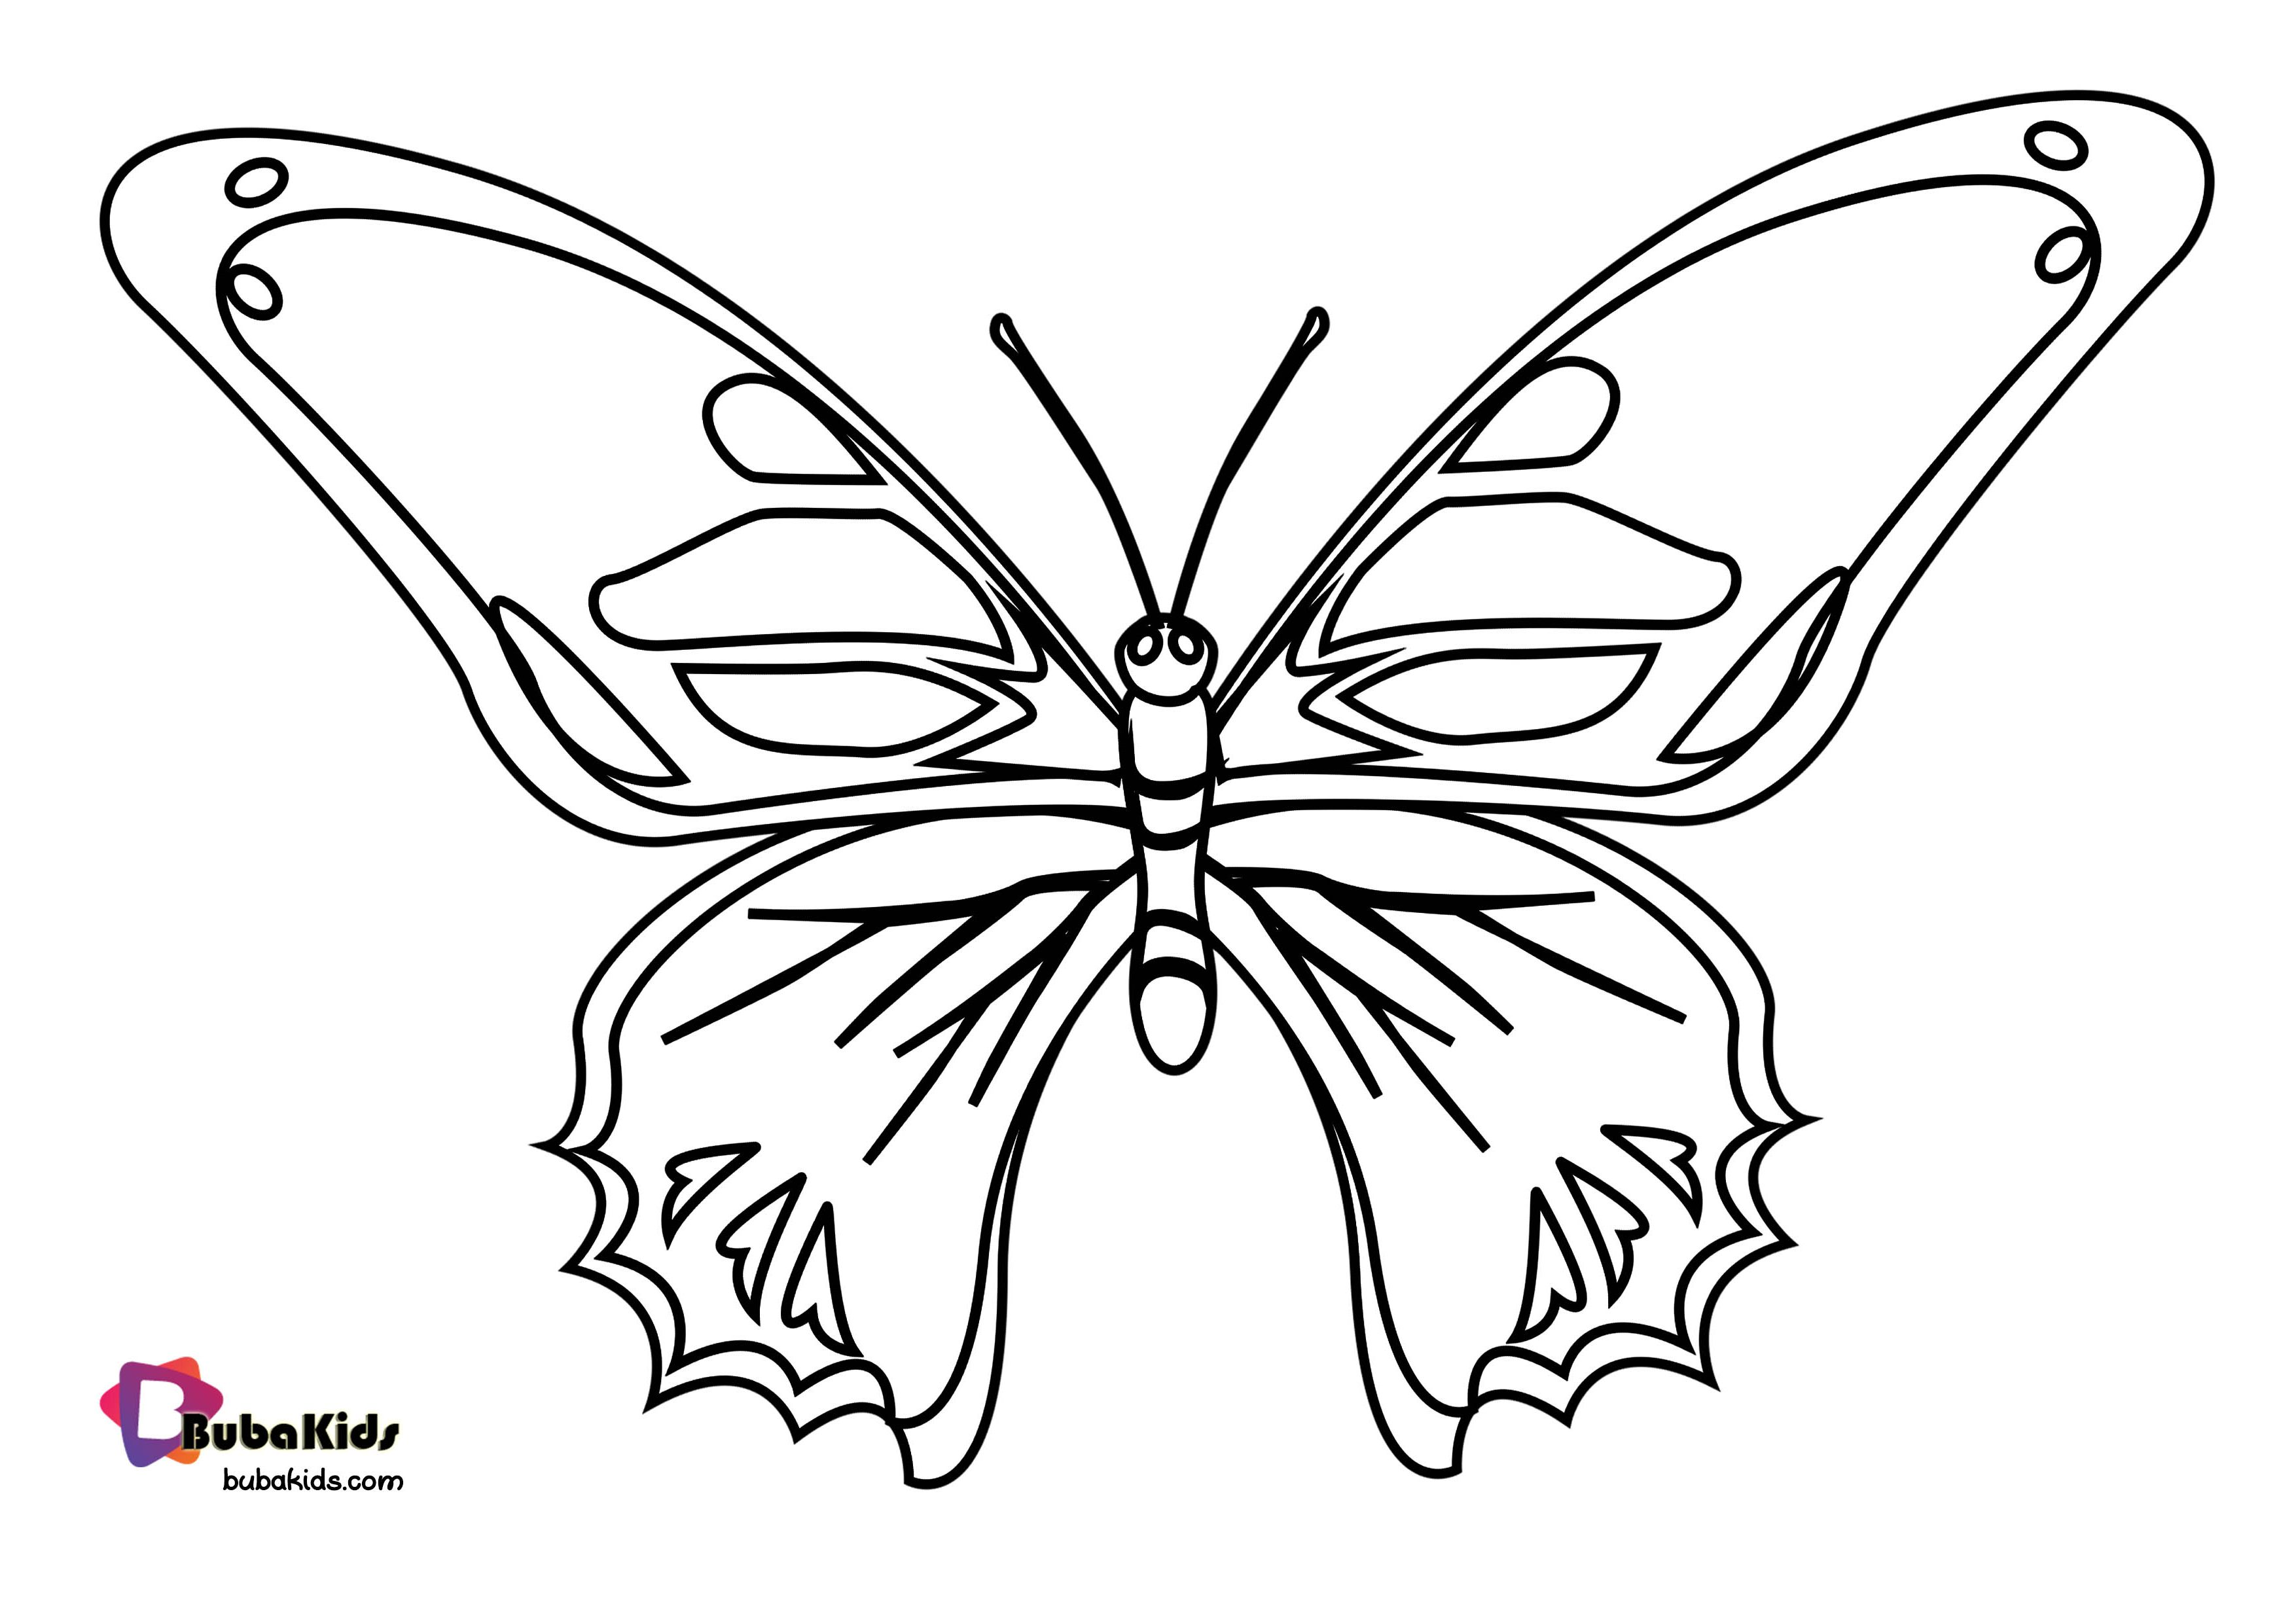 Bubakids Realistic Butterfly Coloring Page Butterflycoloring Animal Coloring Pages Butterfly Coloring Page Coloring Pages Animal Coloring Pages [ 2480 x 3508 Pixel ]